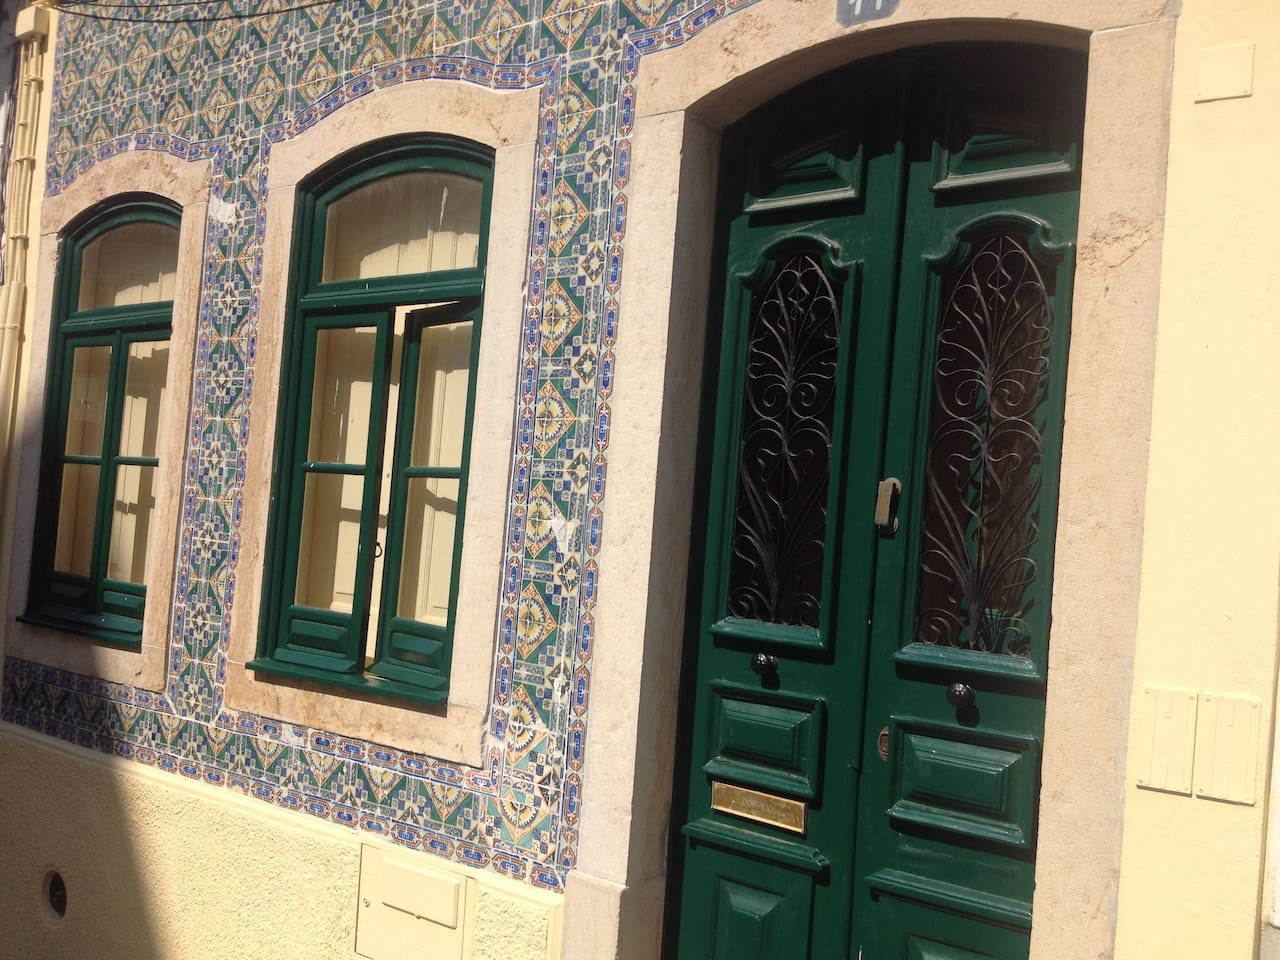 Frontage of traditional Portuguese town house within the historic city walls of Lagos.